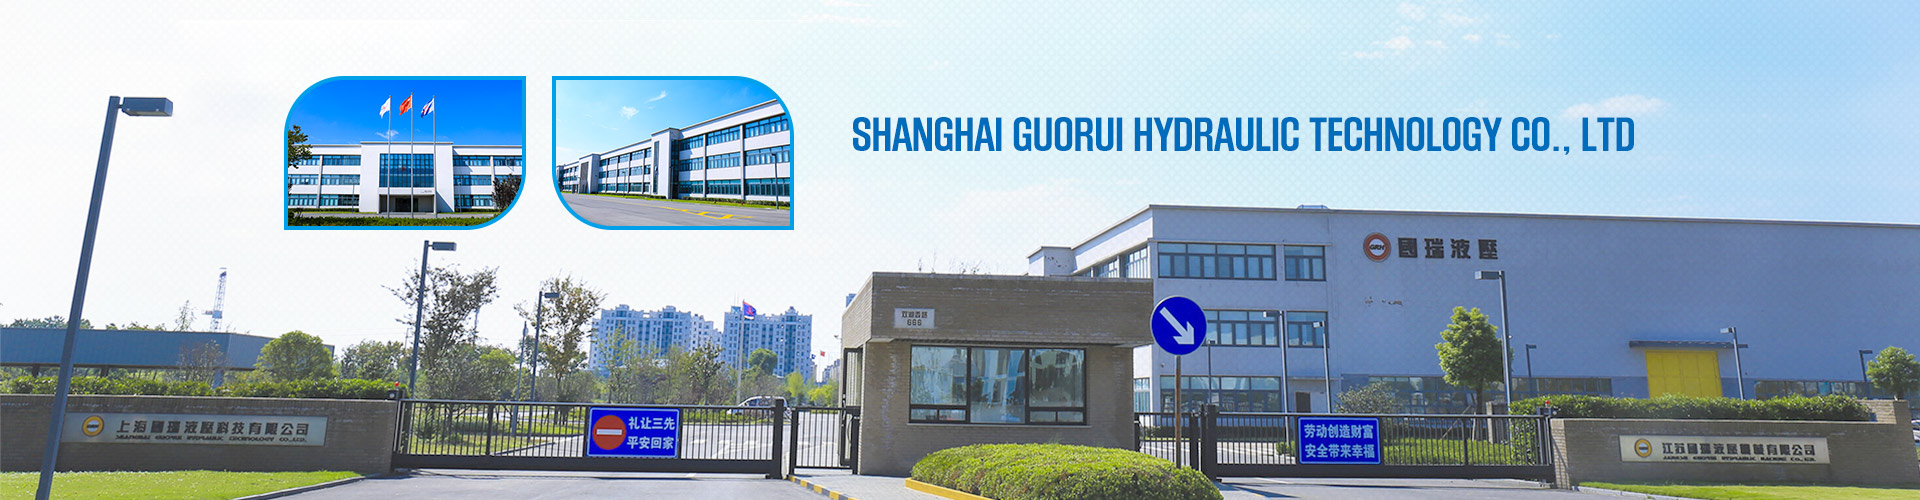 Shanghai Guorui Hydraulic Technology Co., Ltd